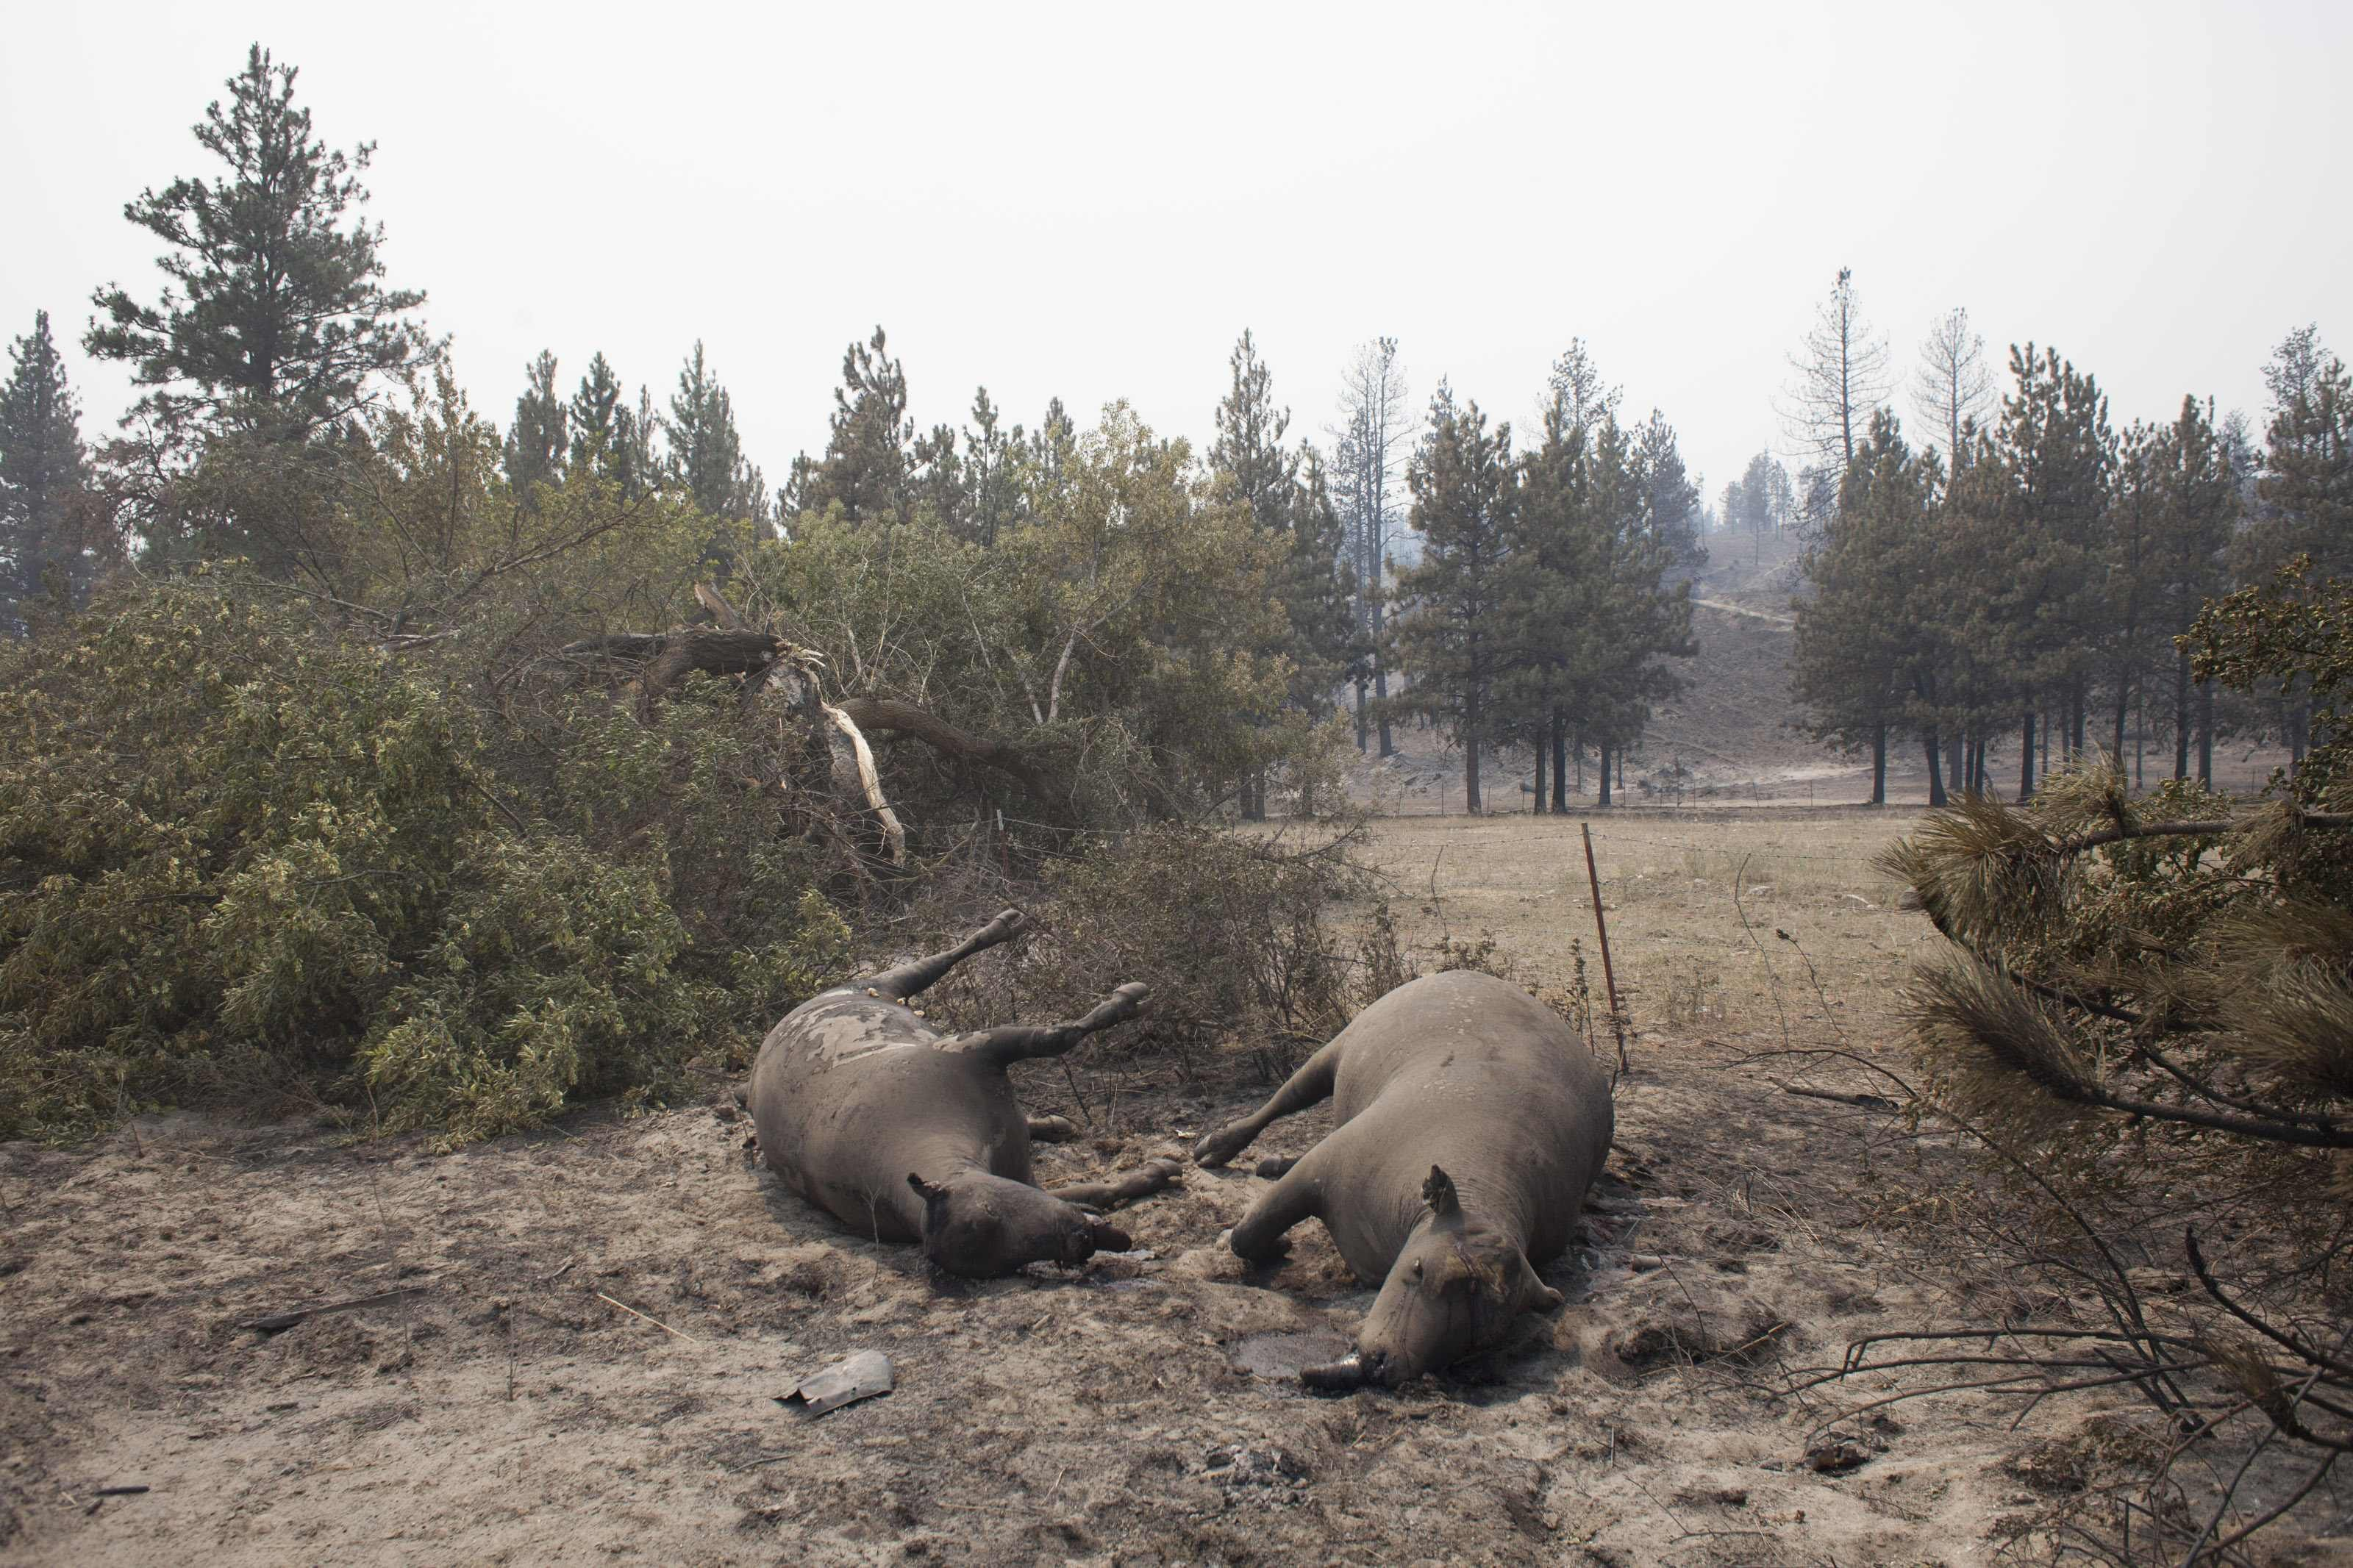 Deceased cattle, which fell victim to the Carlton Complex Fire, are pictured on ranch land near Malott, Washington July 20, 2014.